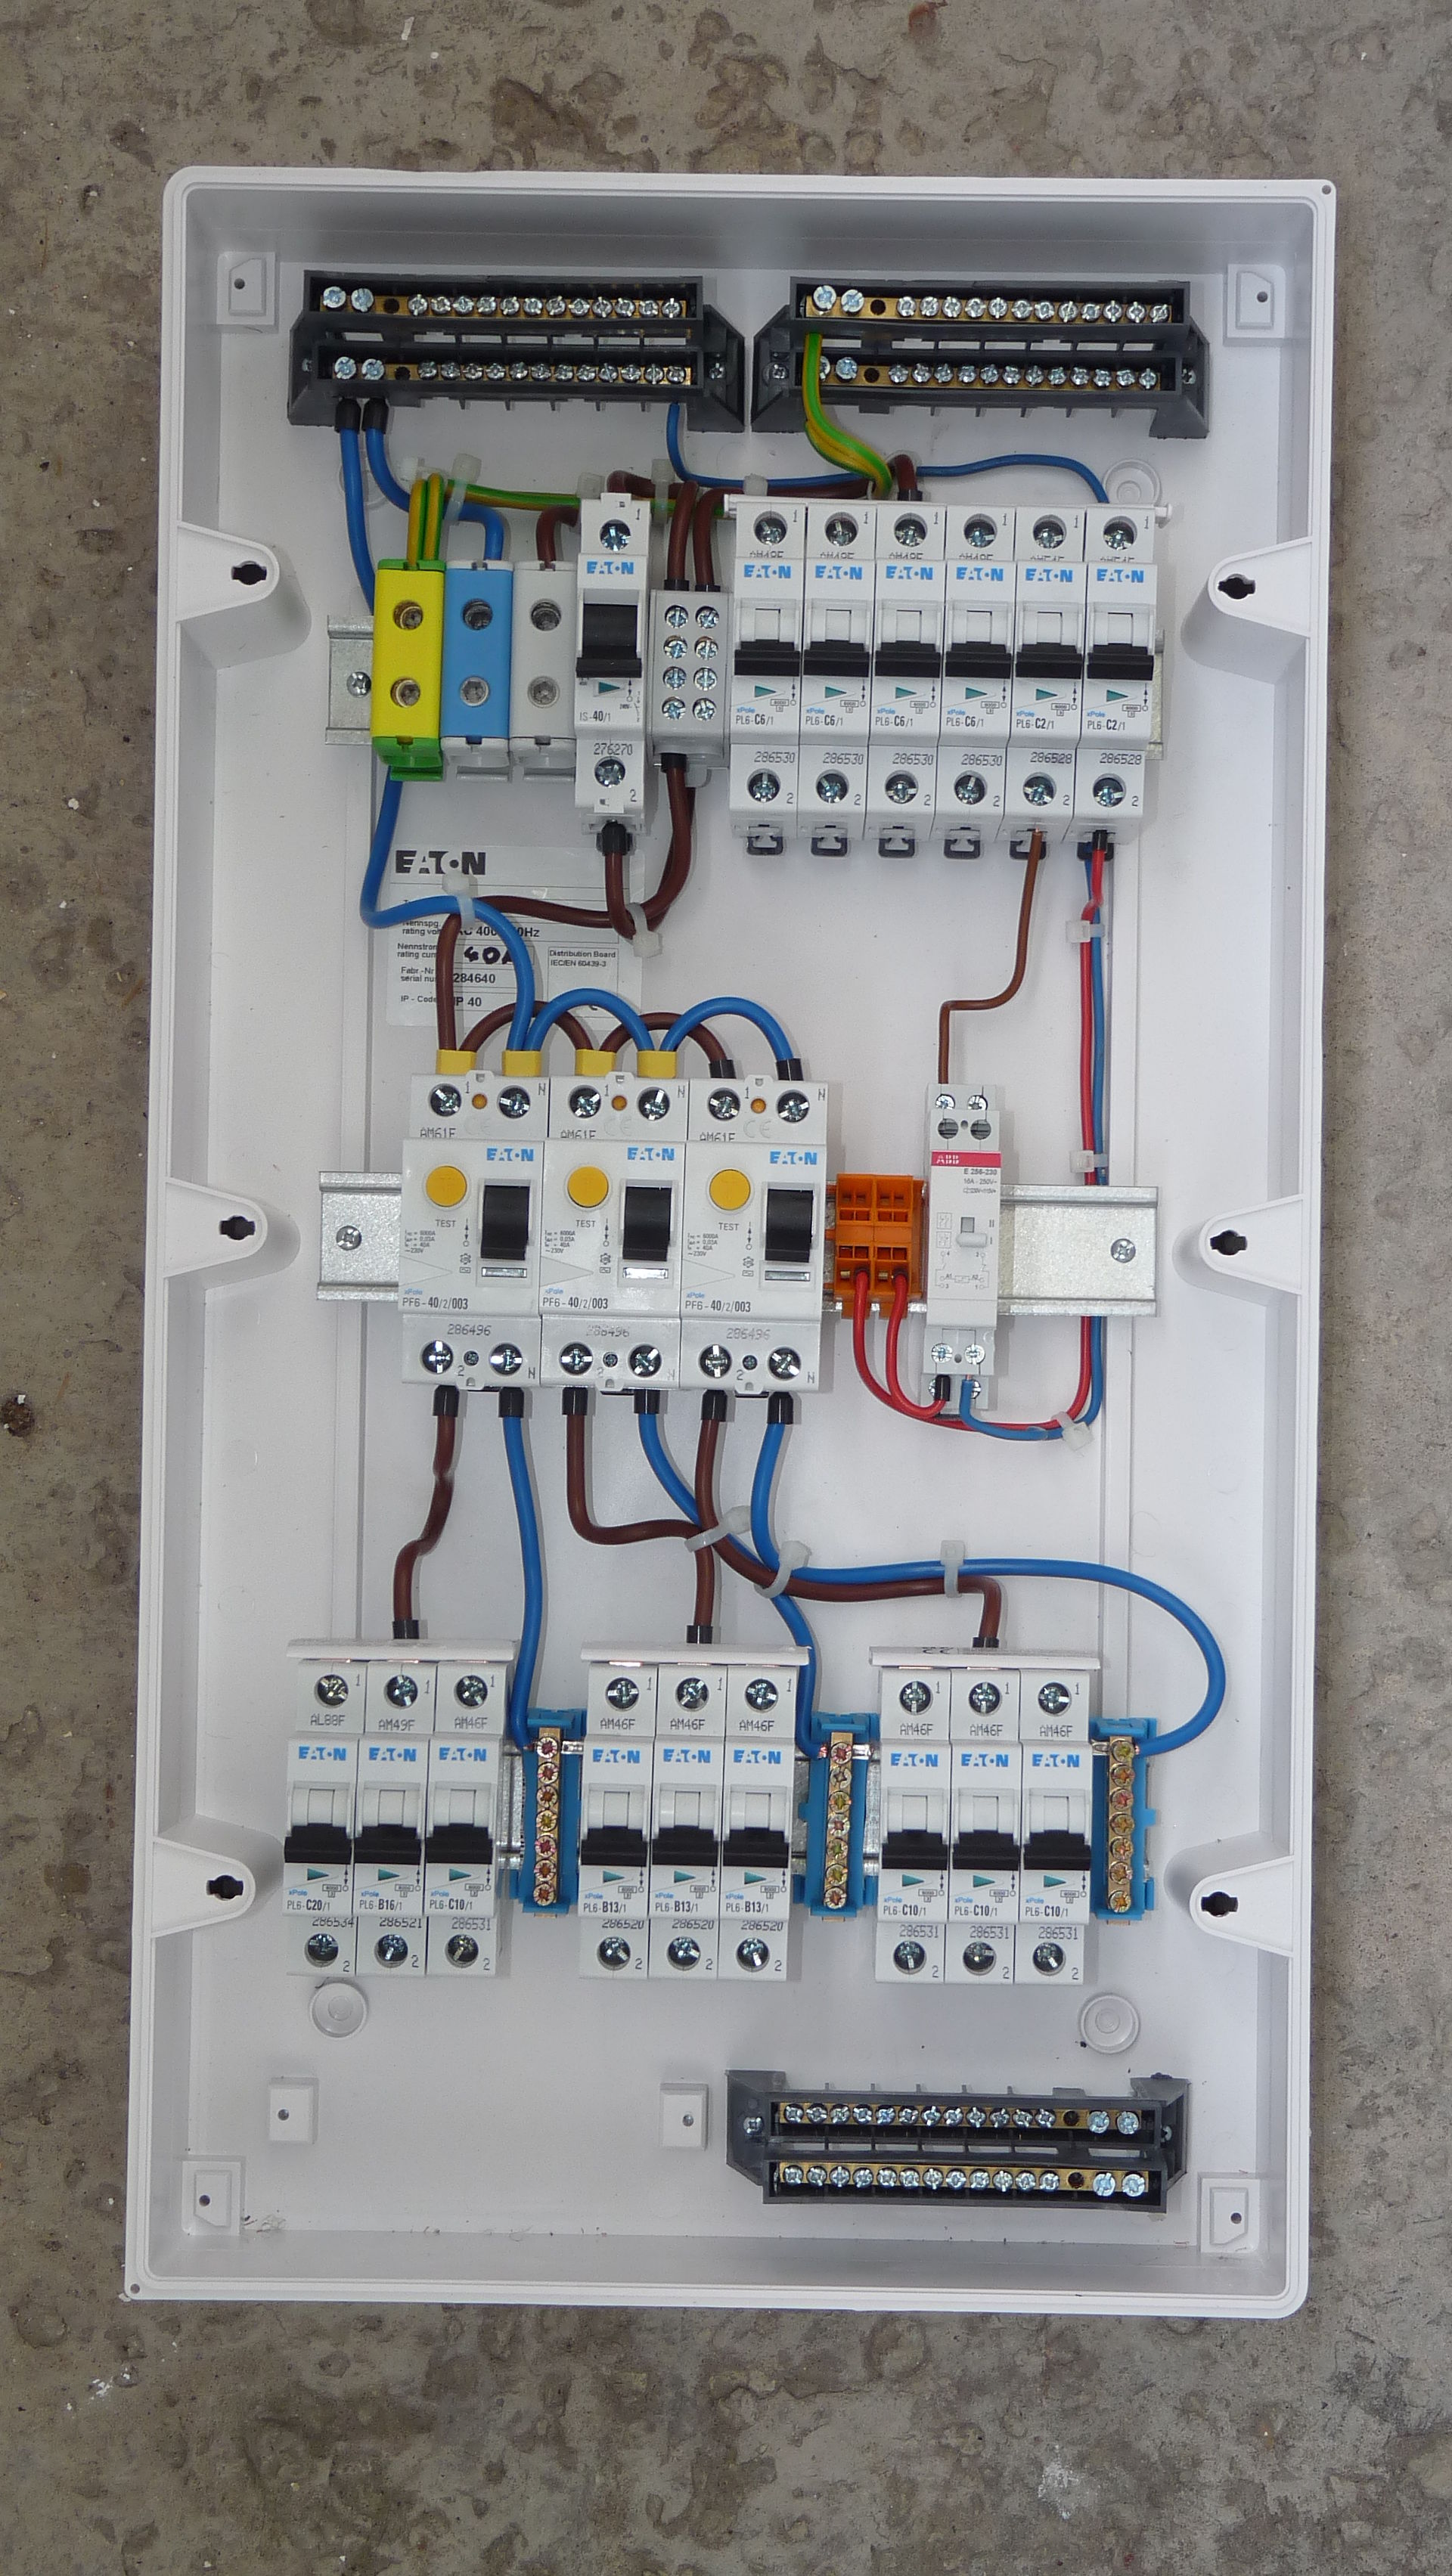 House Fuse Box Wiring Just Diagram Schematic 220 Circuit Breaker Adding To A Residential 37 Images